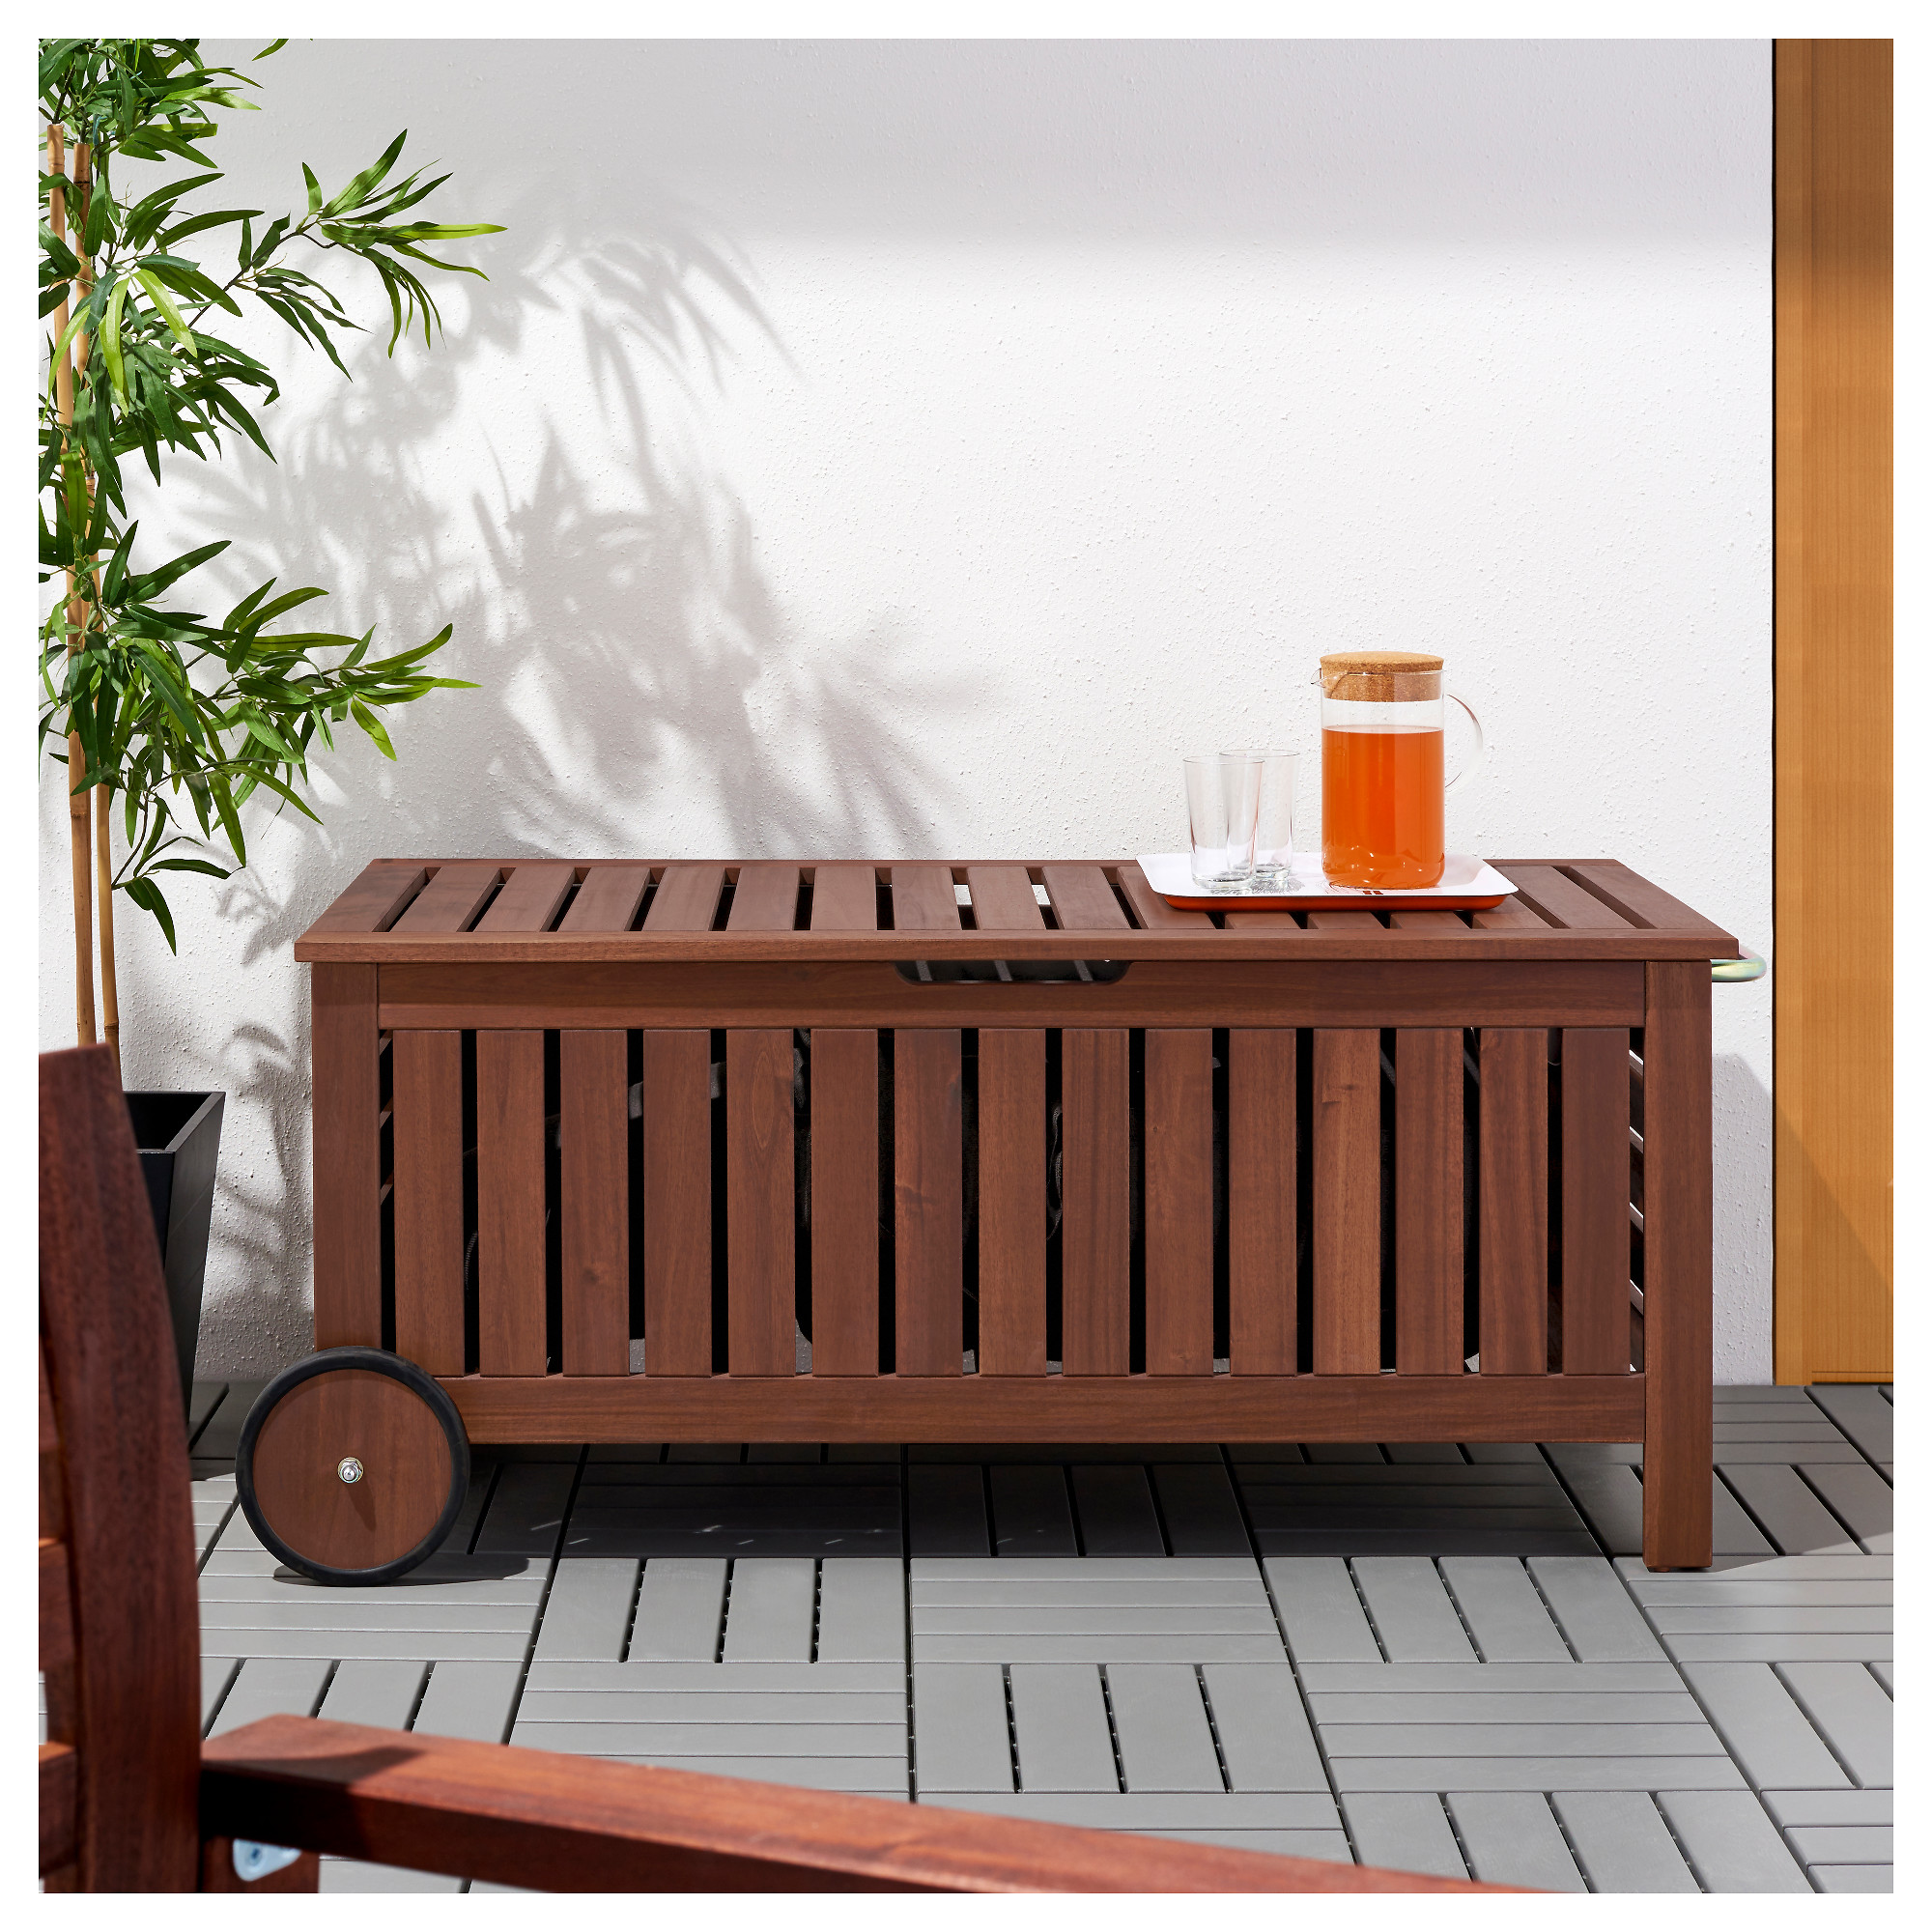 of bench amp modern benches ideas with storage concept cushion small outdoor box patio